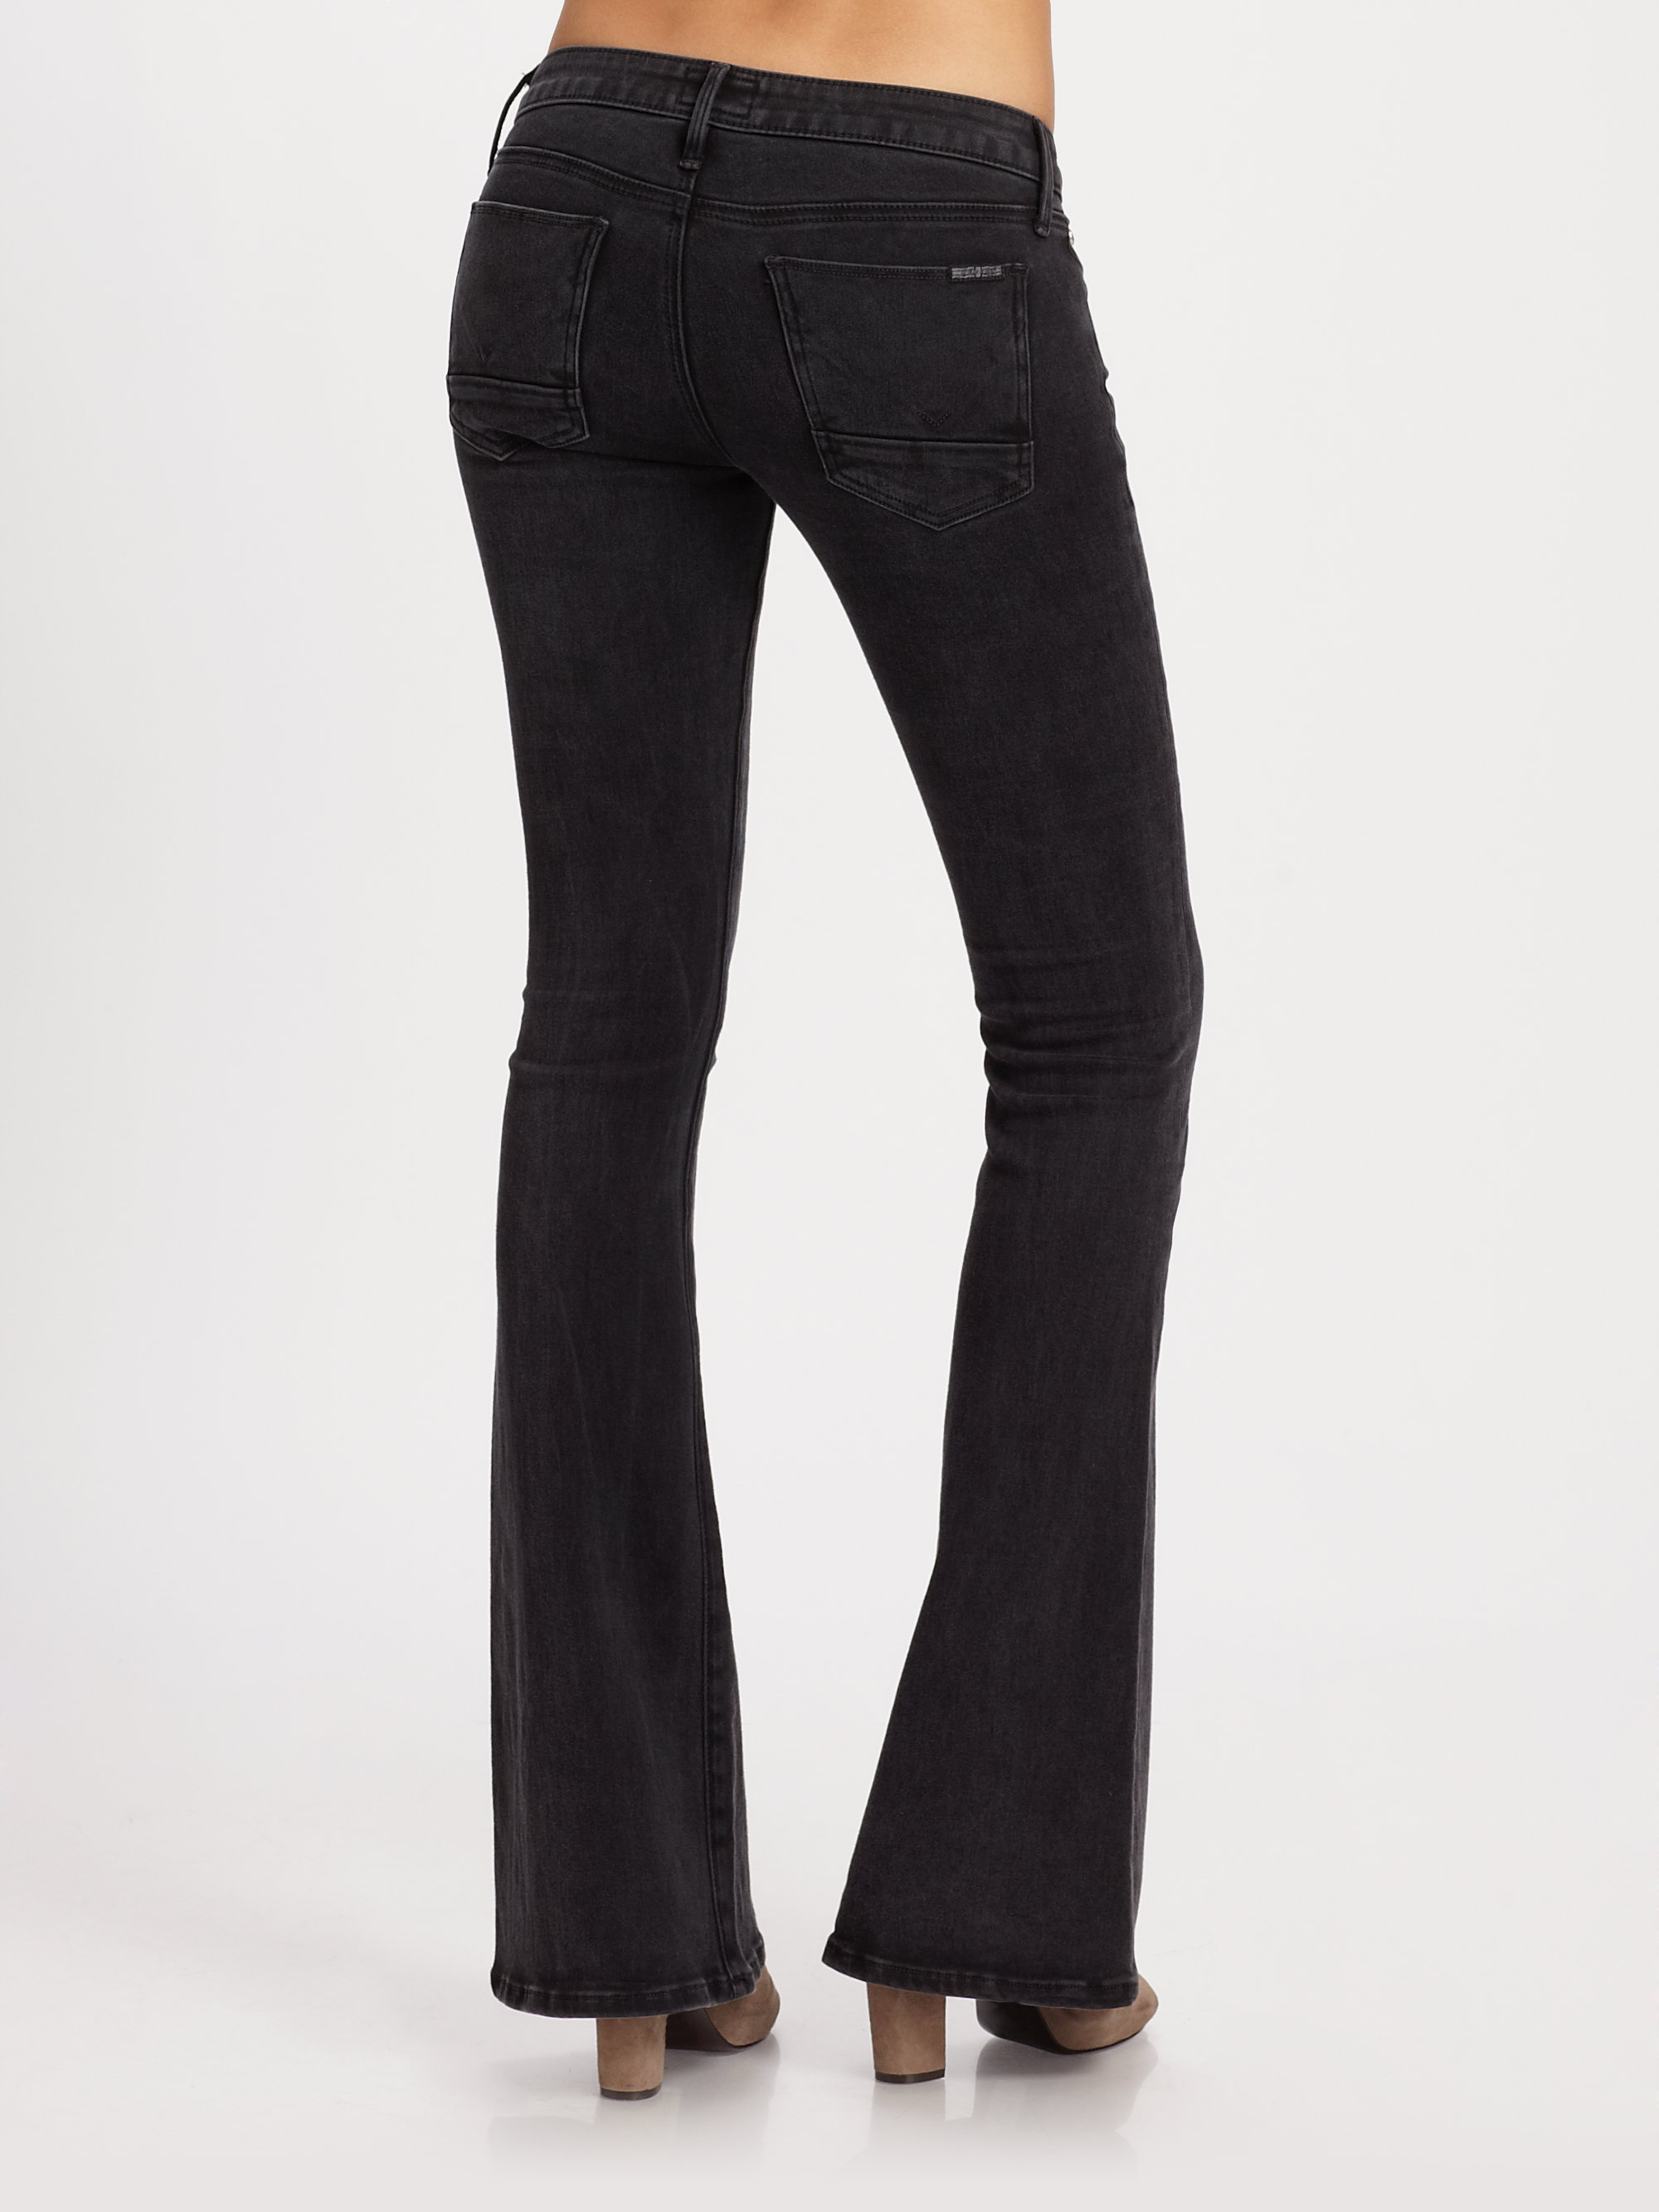 Hudson jeans Mia Flare Jeans in Black | Lyst